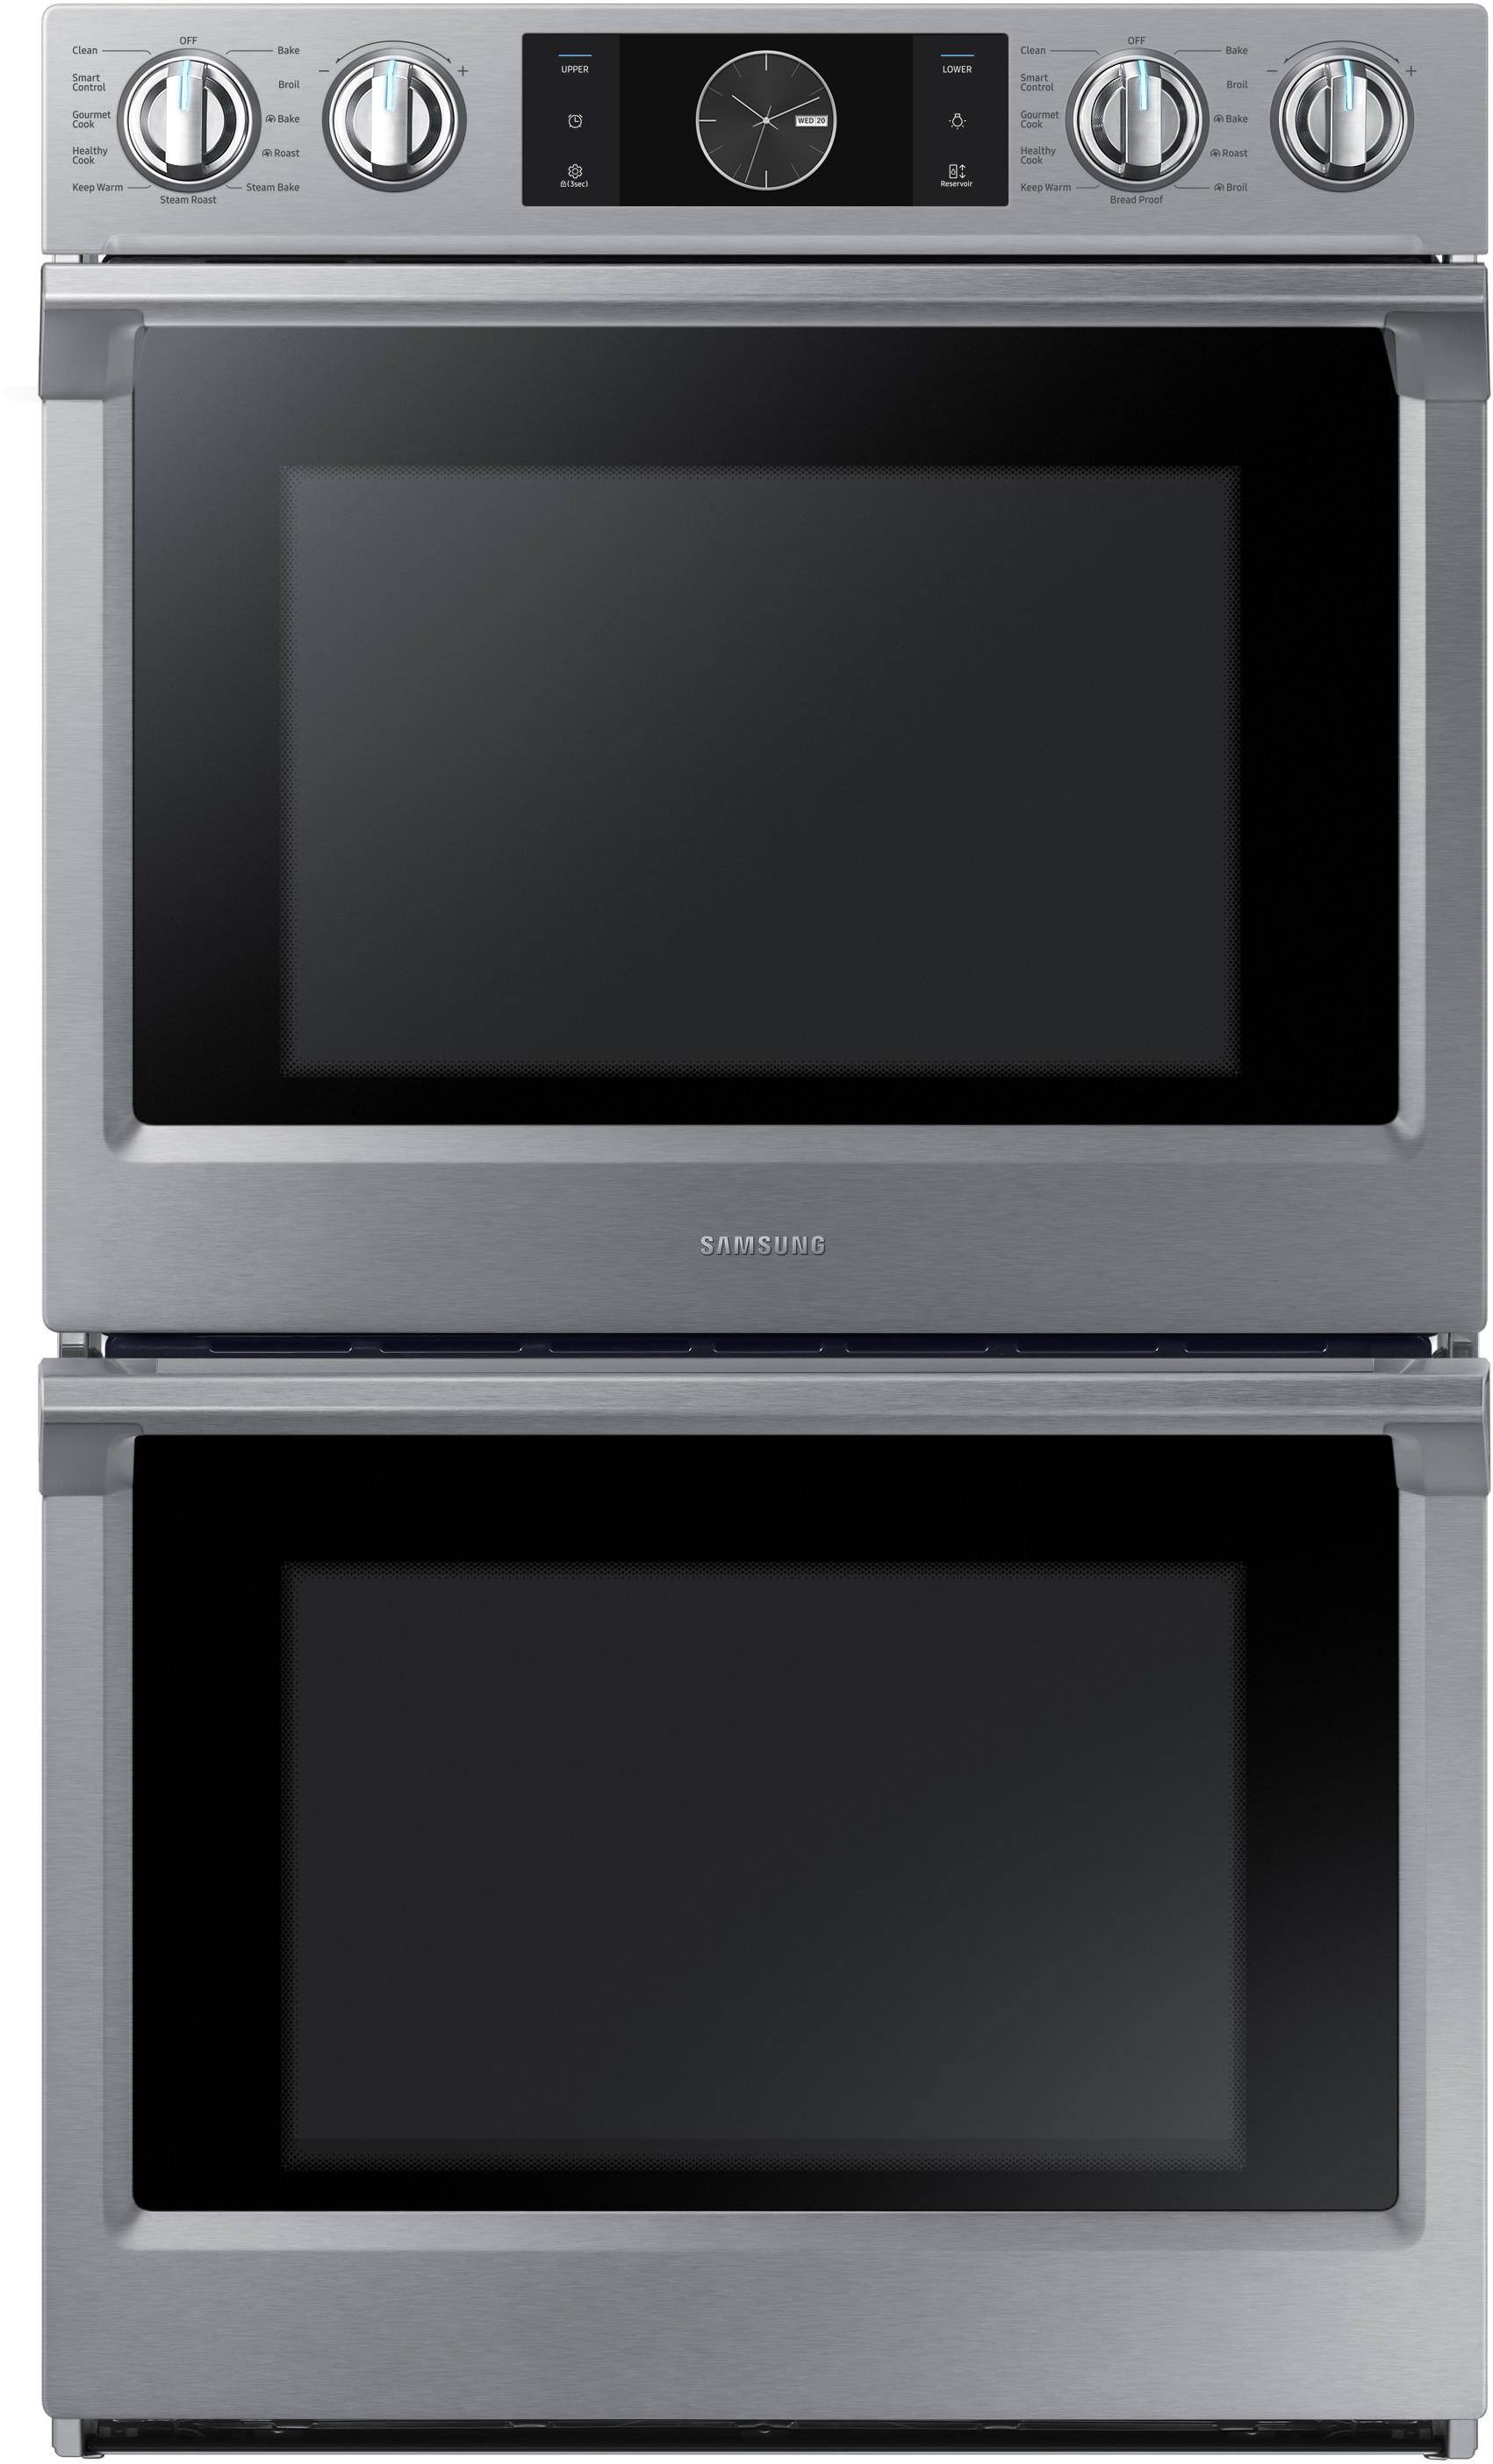 Samsung Nv51k7770ds 30 Inch Electric Double Wall Oven With 10 2 Cu